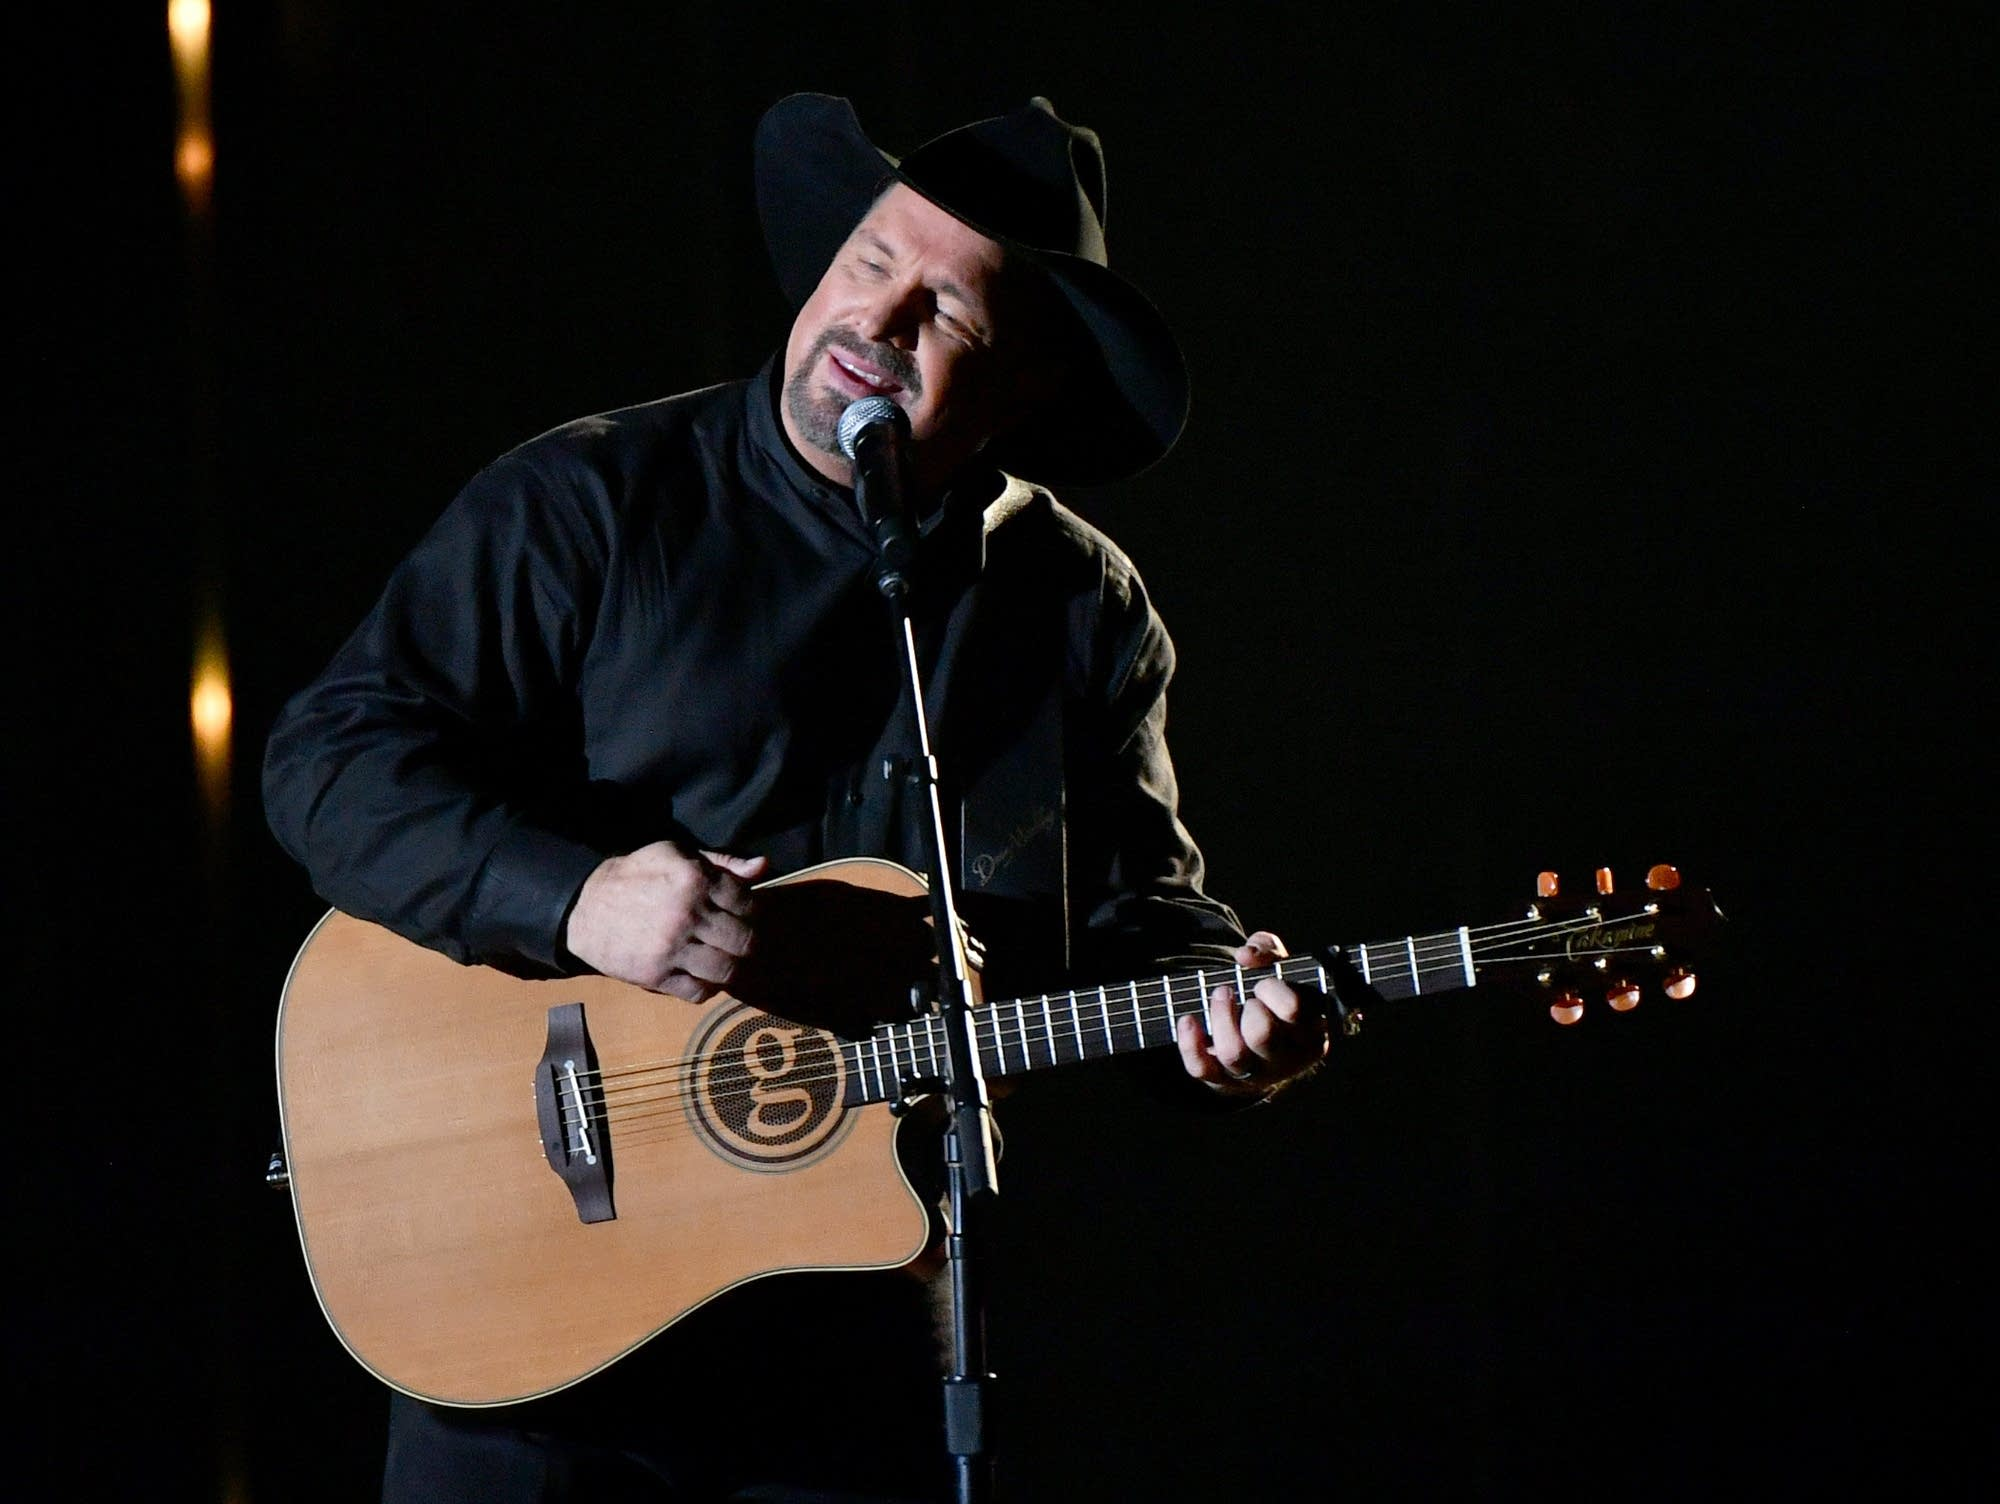 Singer-songwriter Garth Brooks